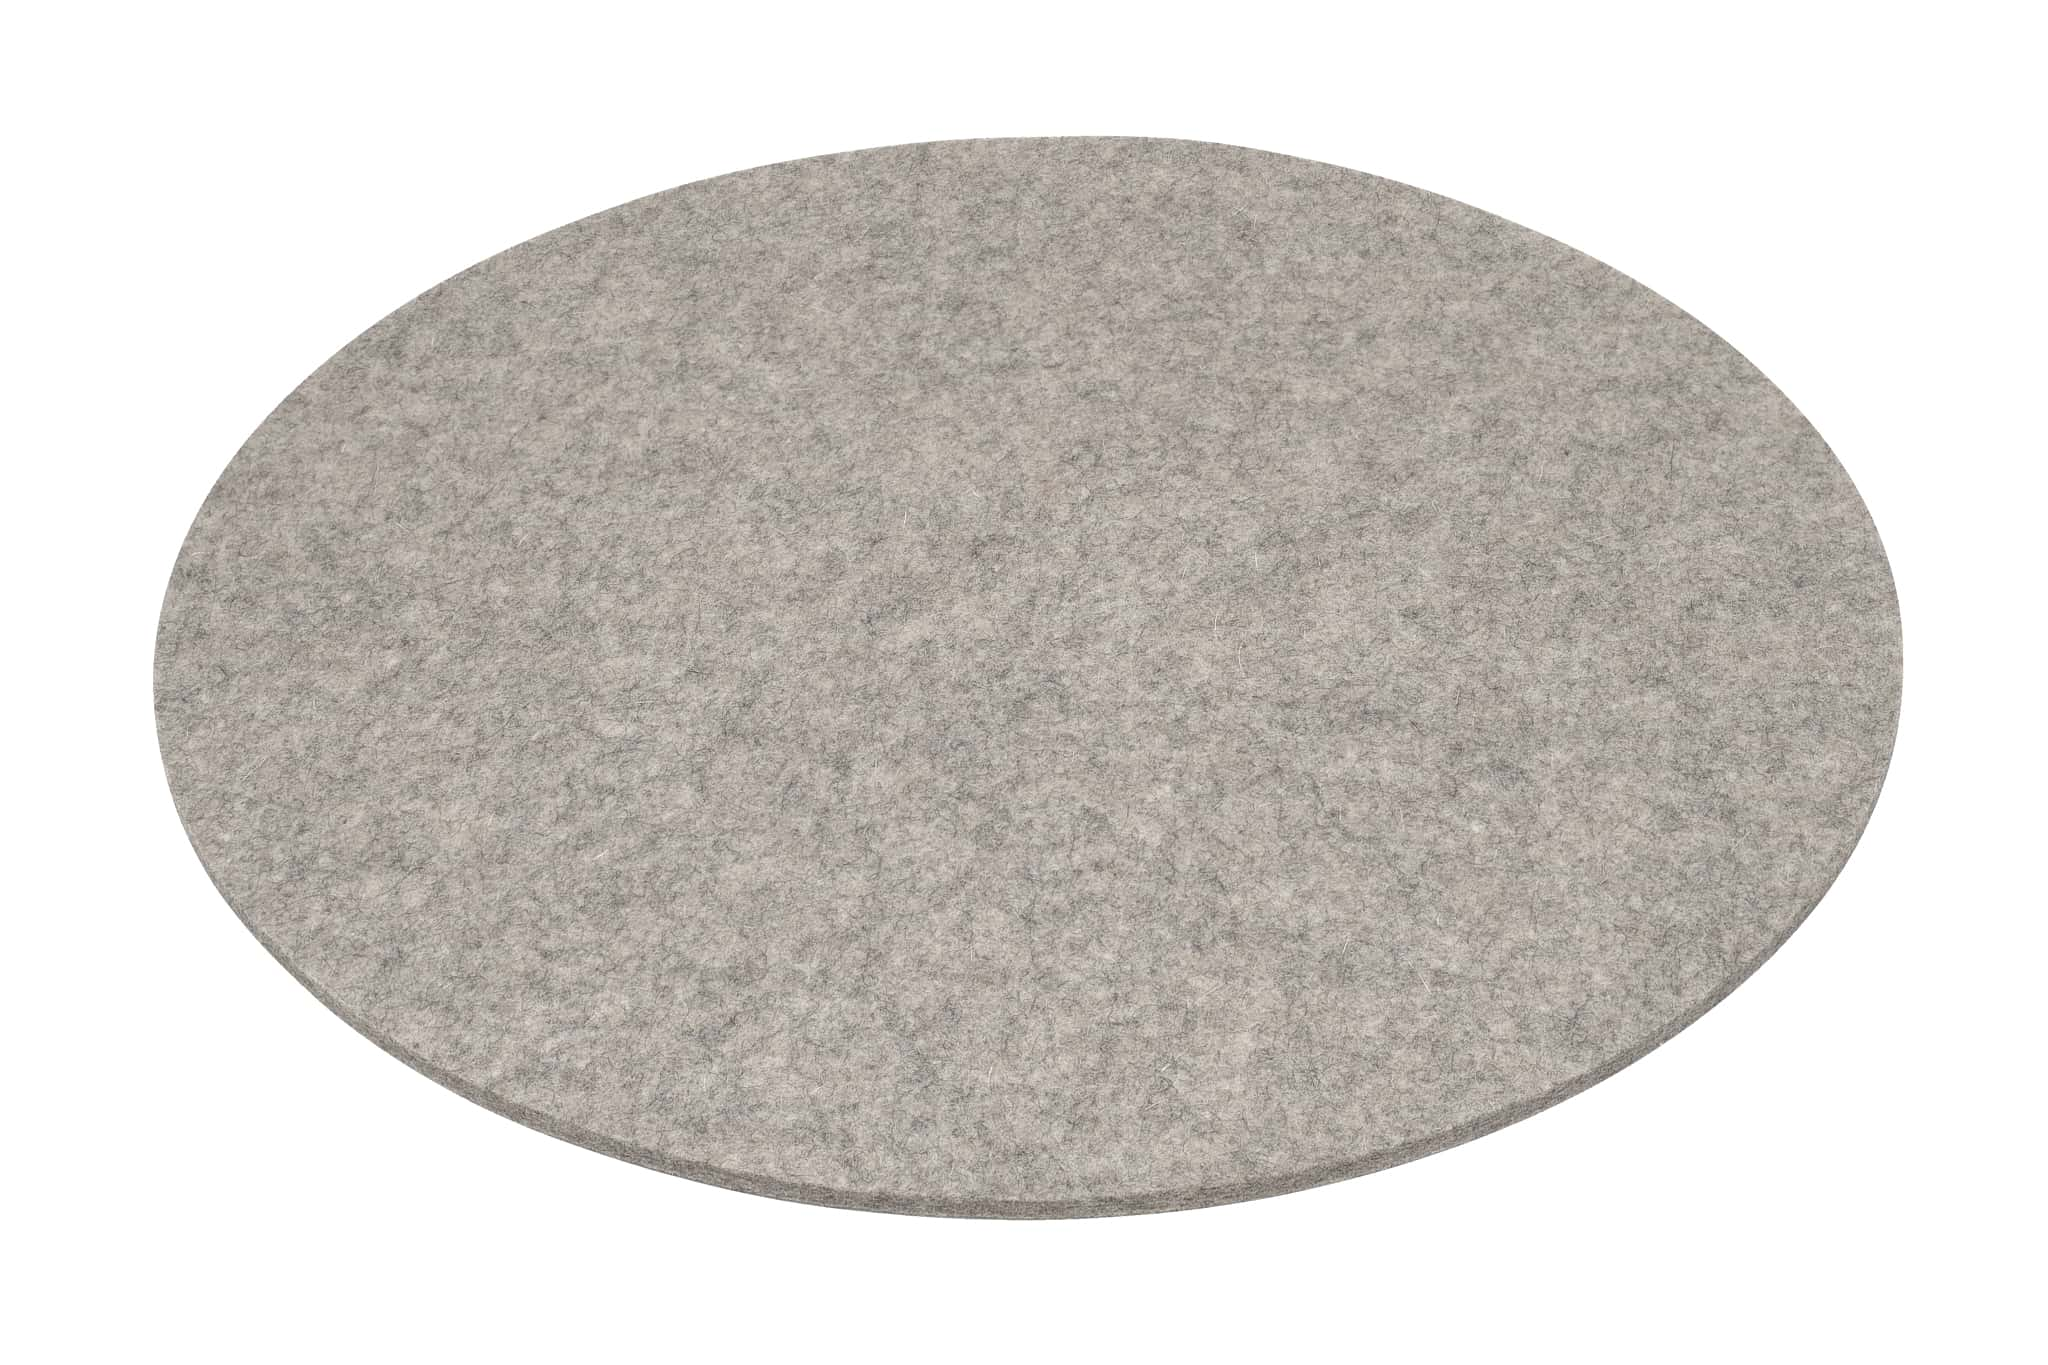 Rectangular Felt Placemat in Light-Grey by Hey-Sign 300134507 looking at Front-Angle